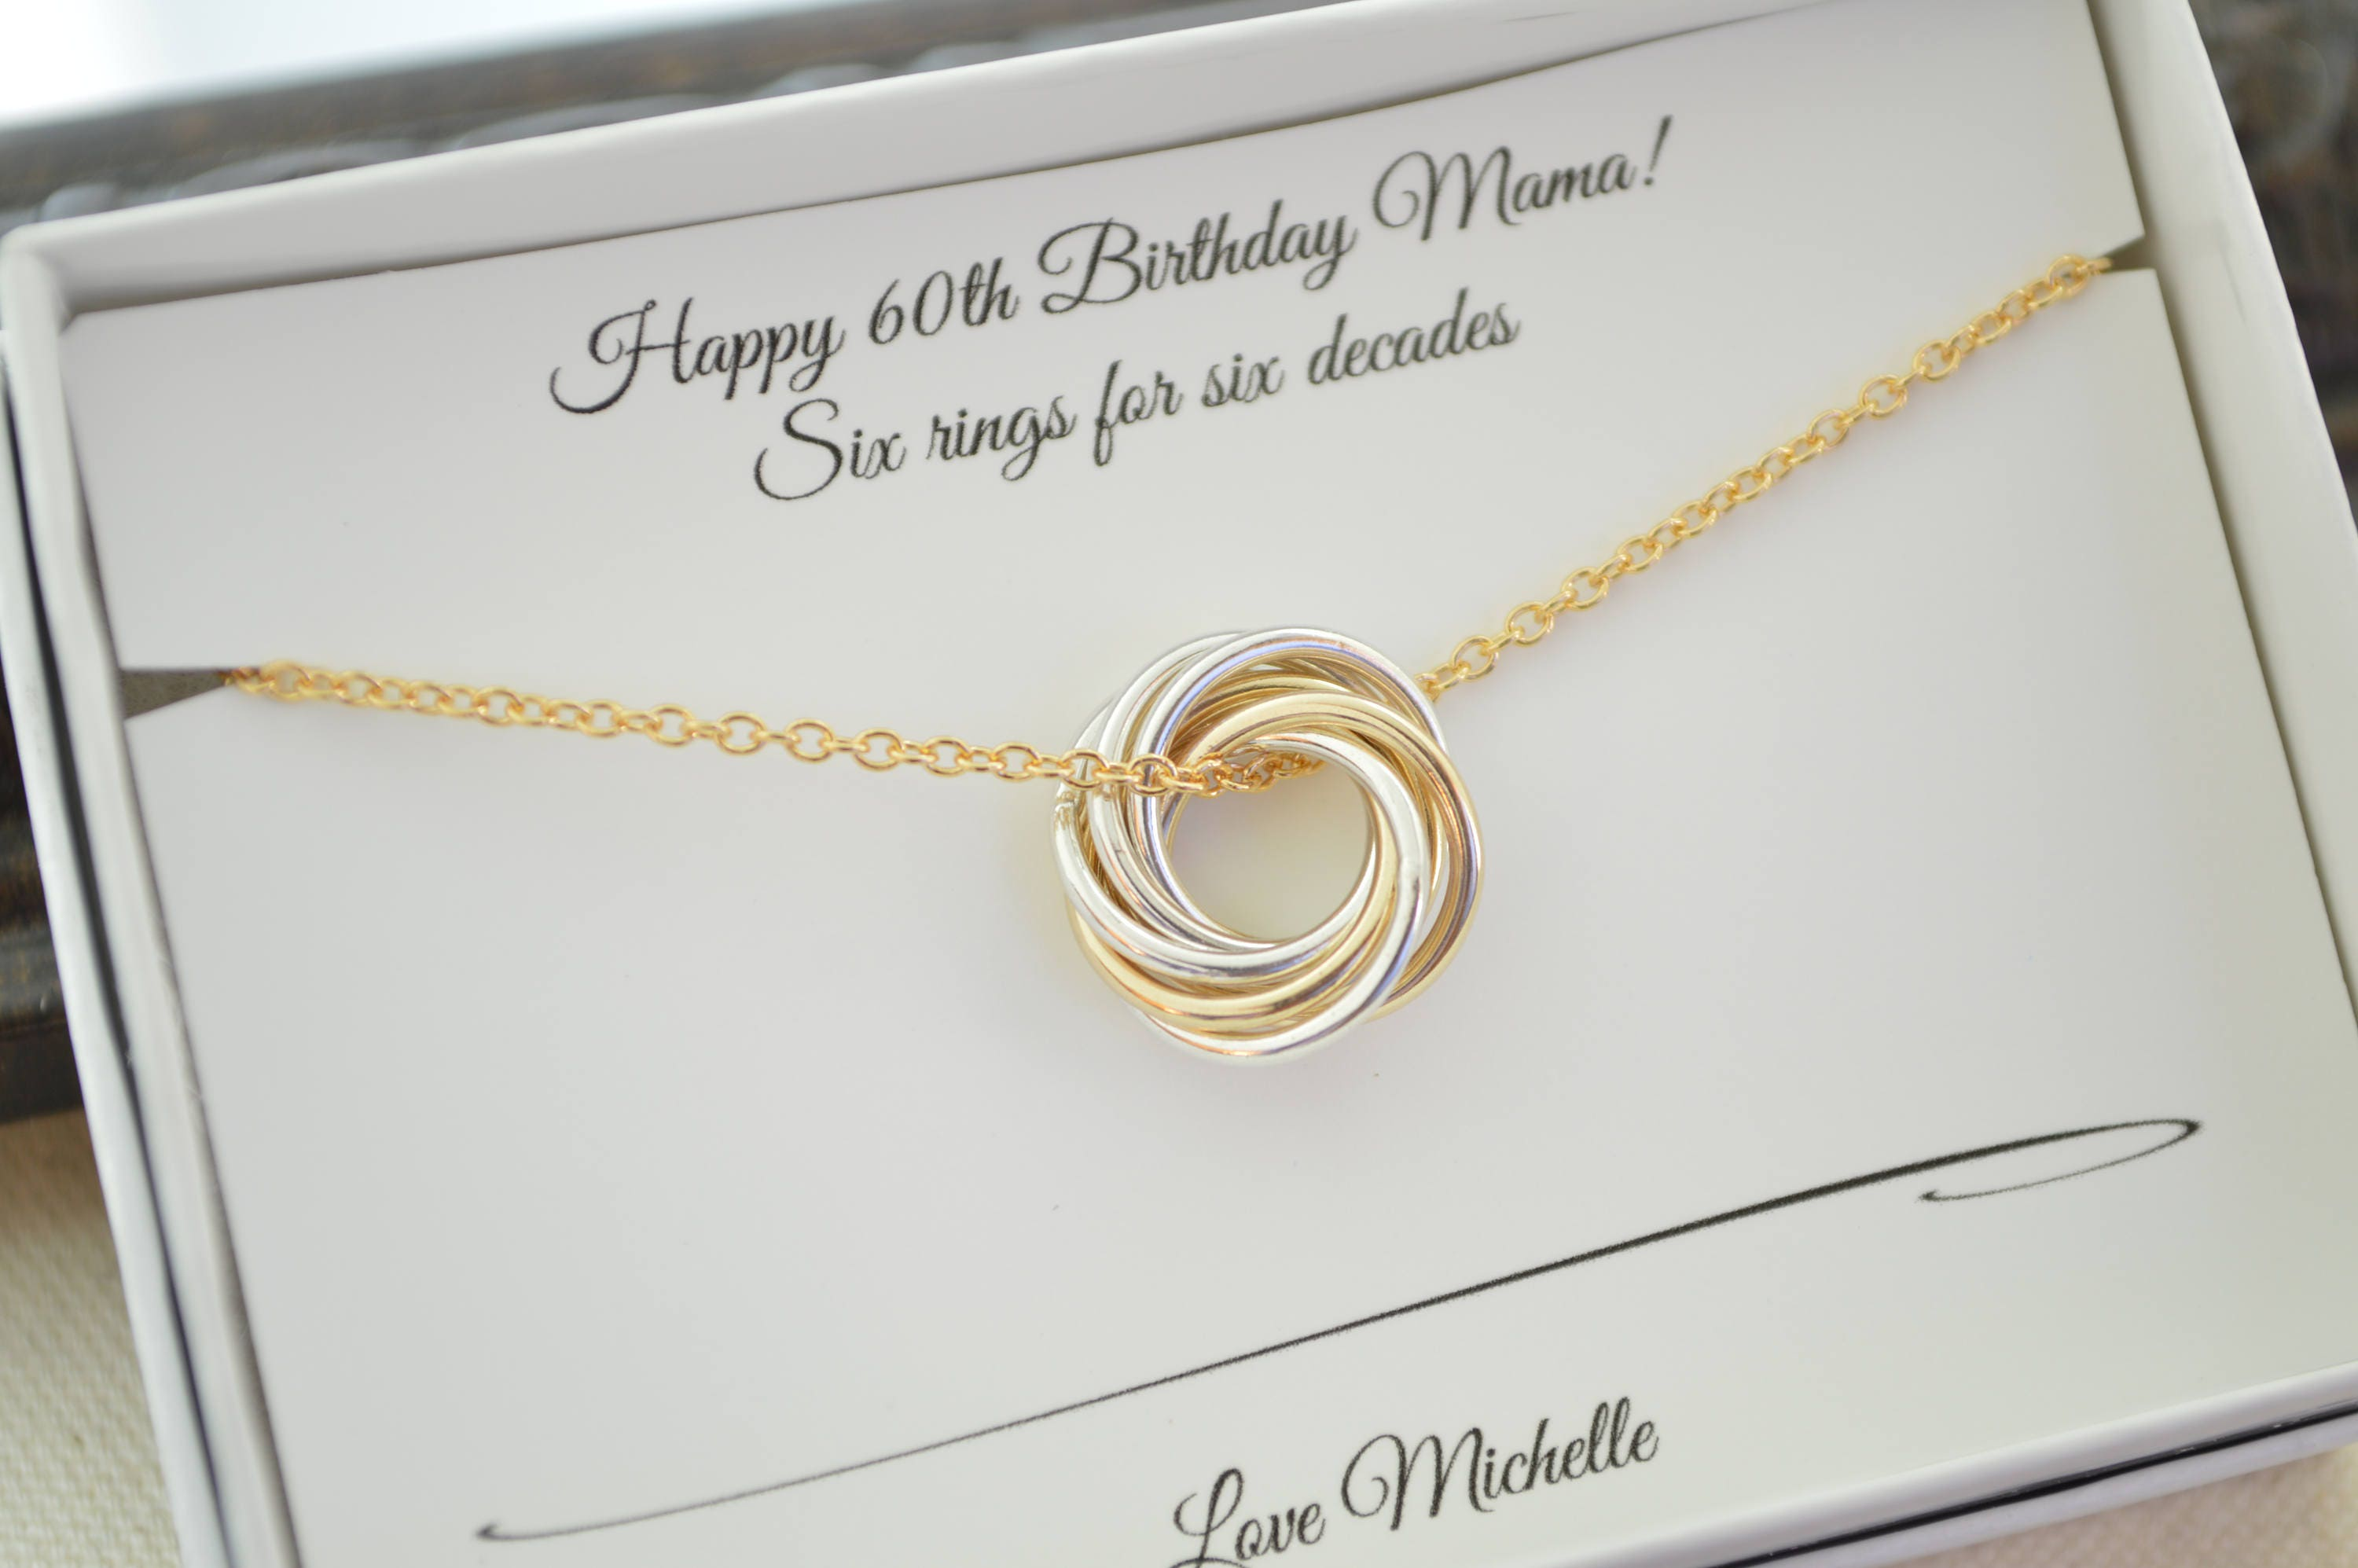 Petite Necklace Mixed Metals 60th Birthday Gift For Mom